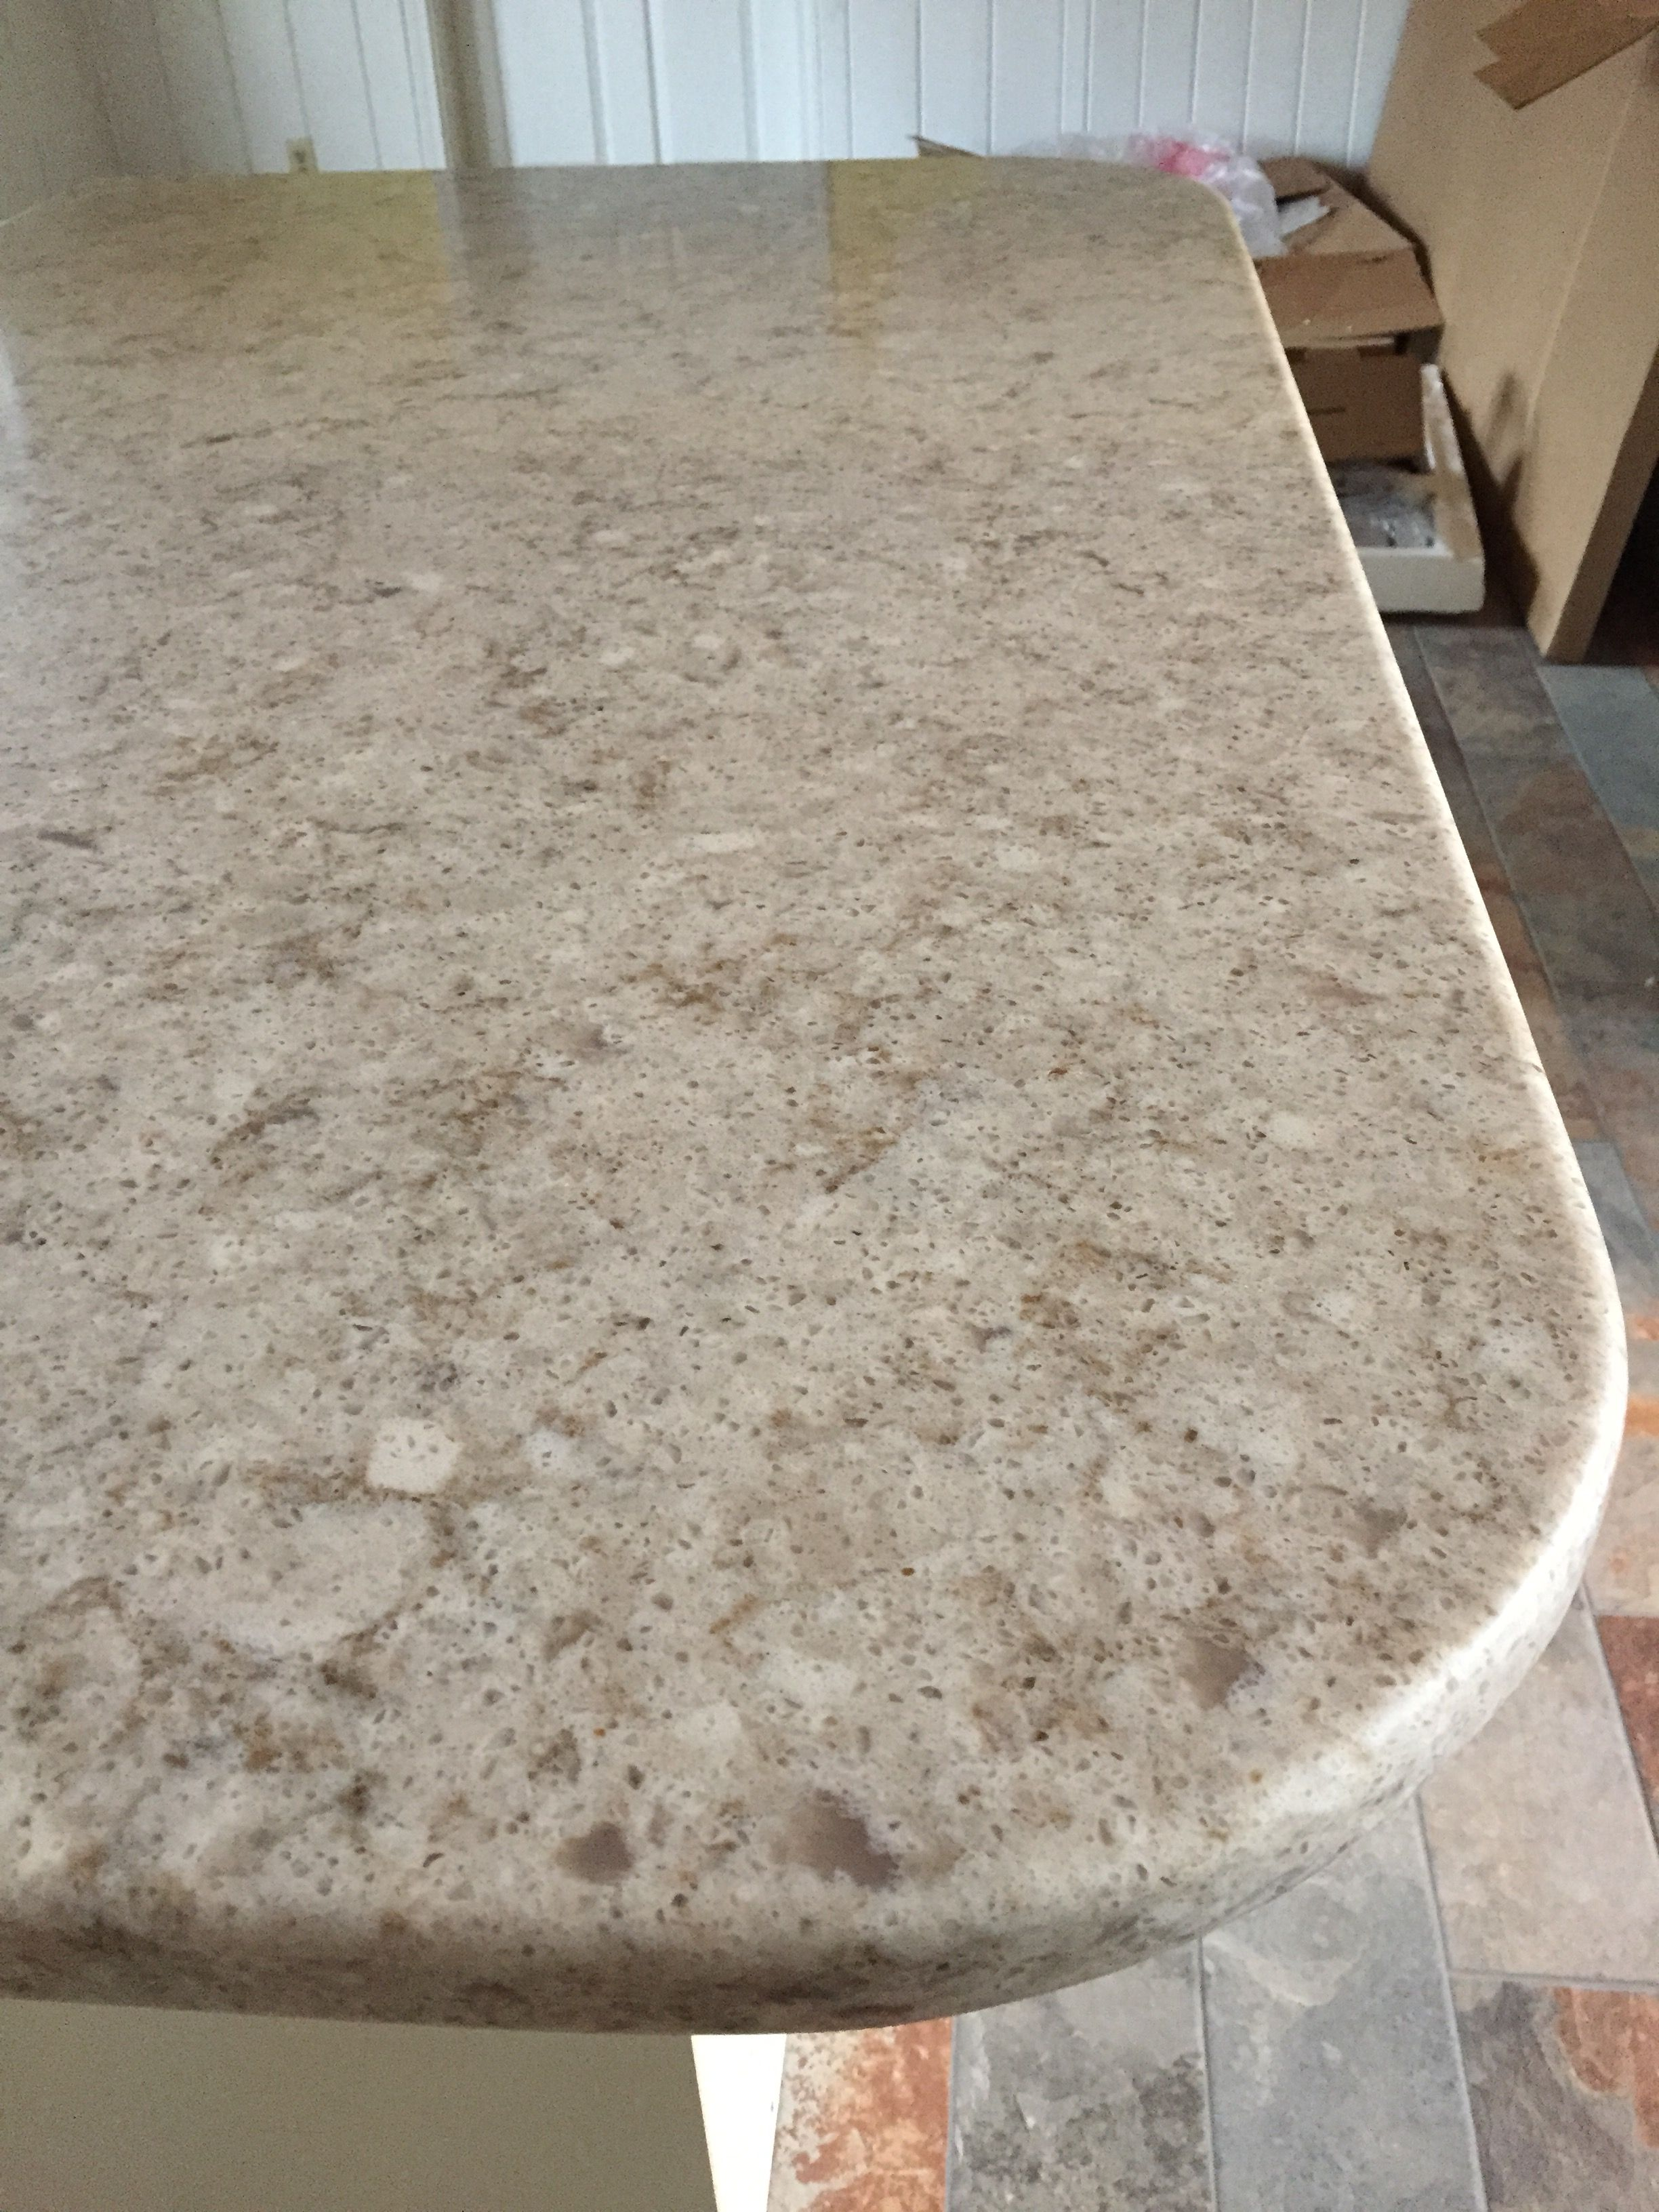 New Quartz Countertop Installed Silestone Quasar Engineered